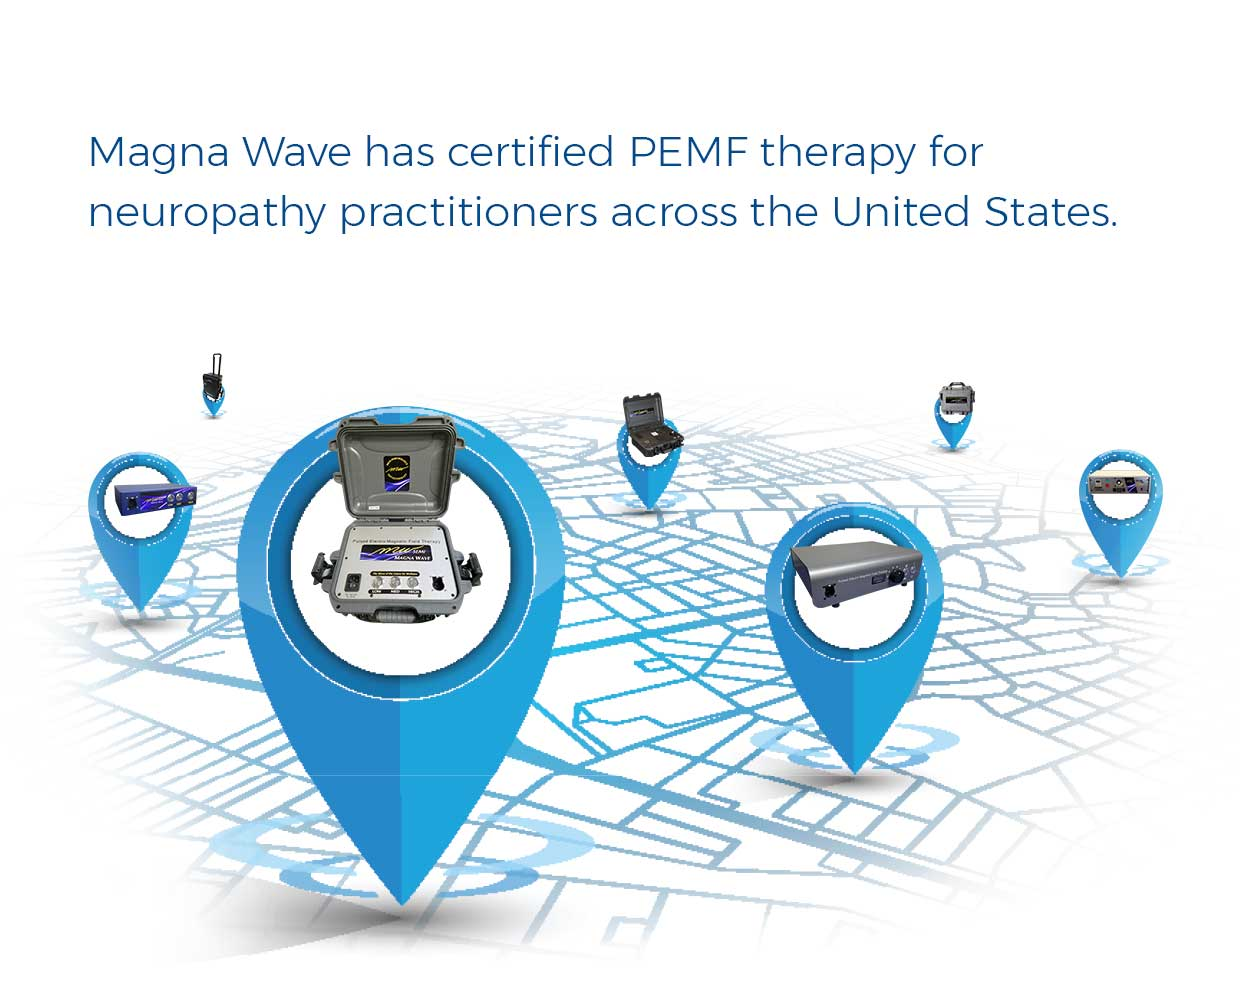 Magna Wave has certified PEMF therapy for neuropathy practitioners across the United States.